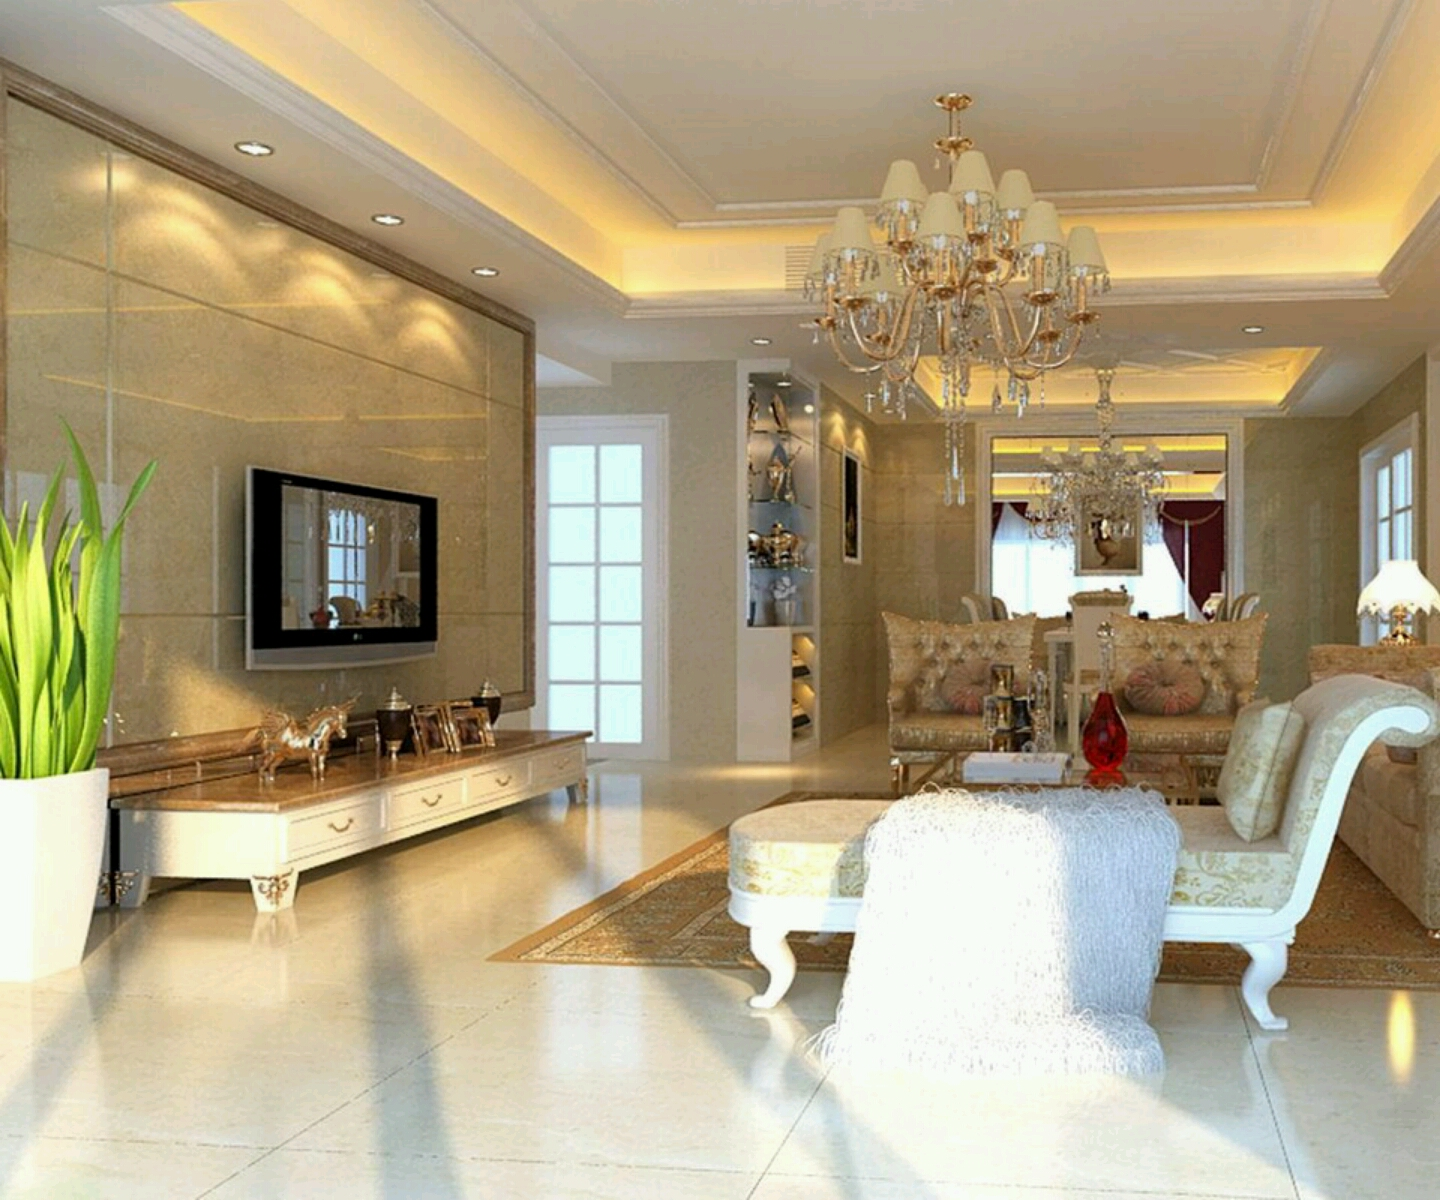 Nice Luxury Home Interior Design Interior Designs: Luxury Home Interior